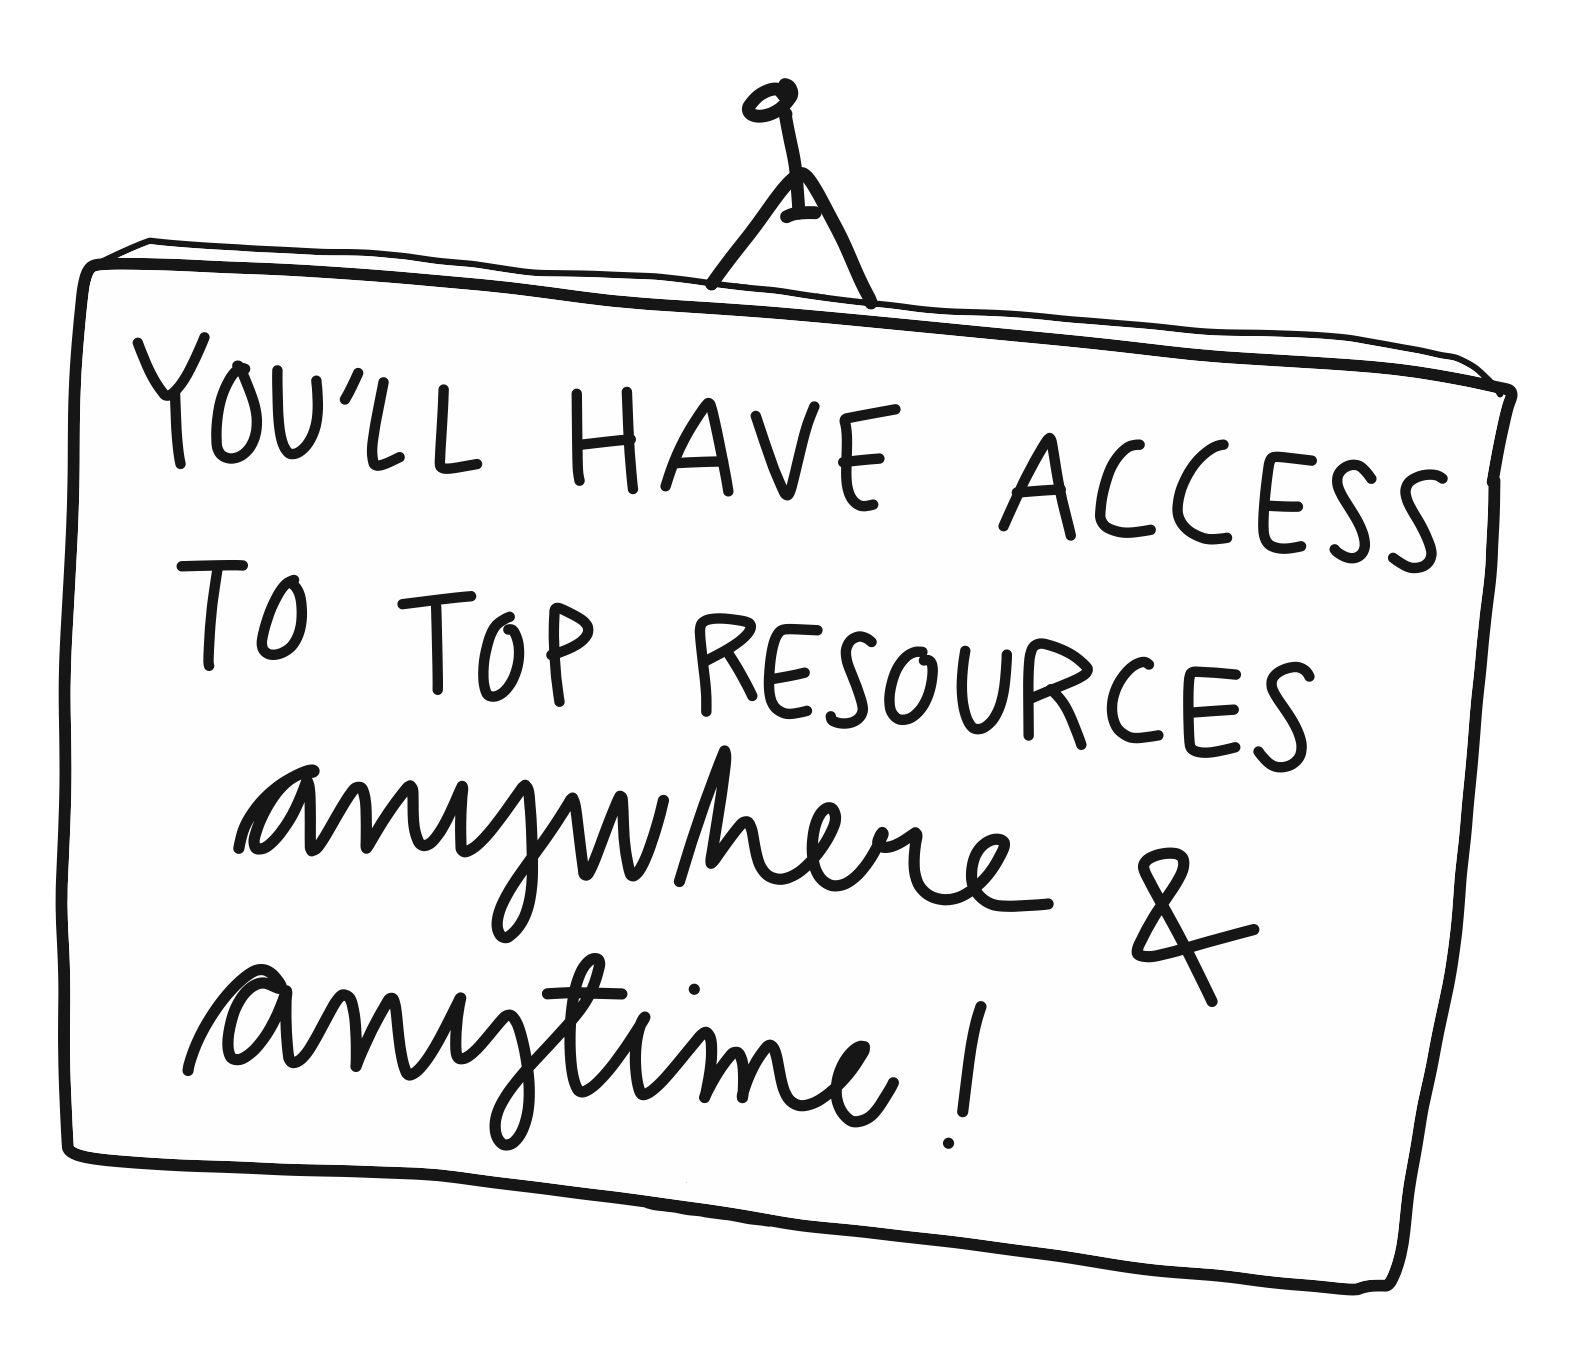 """Cartoon image of a nailed note with the message """"You'll have access to top resources anywhere & anytime!"""""""